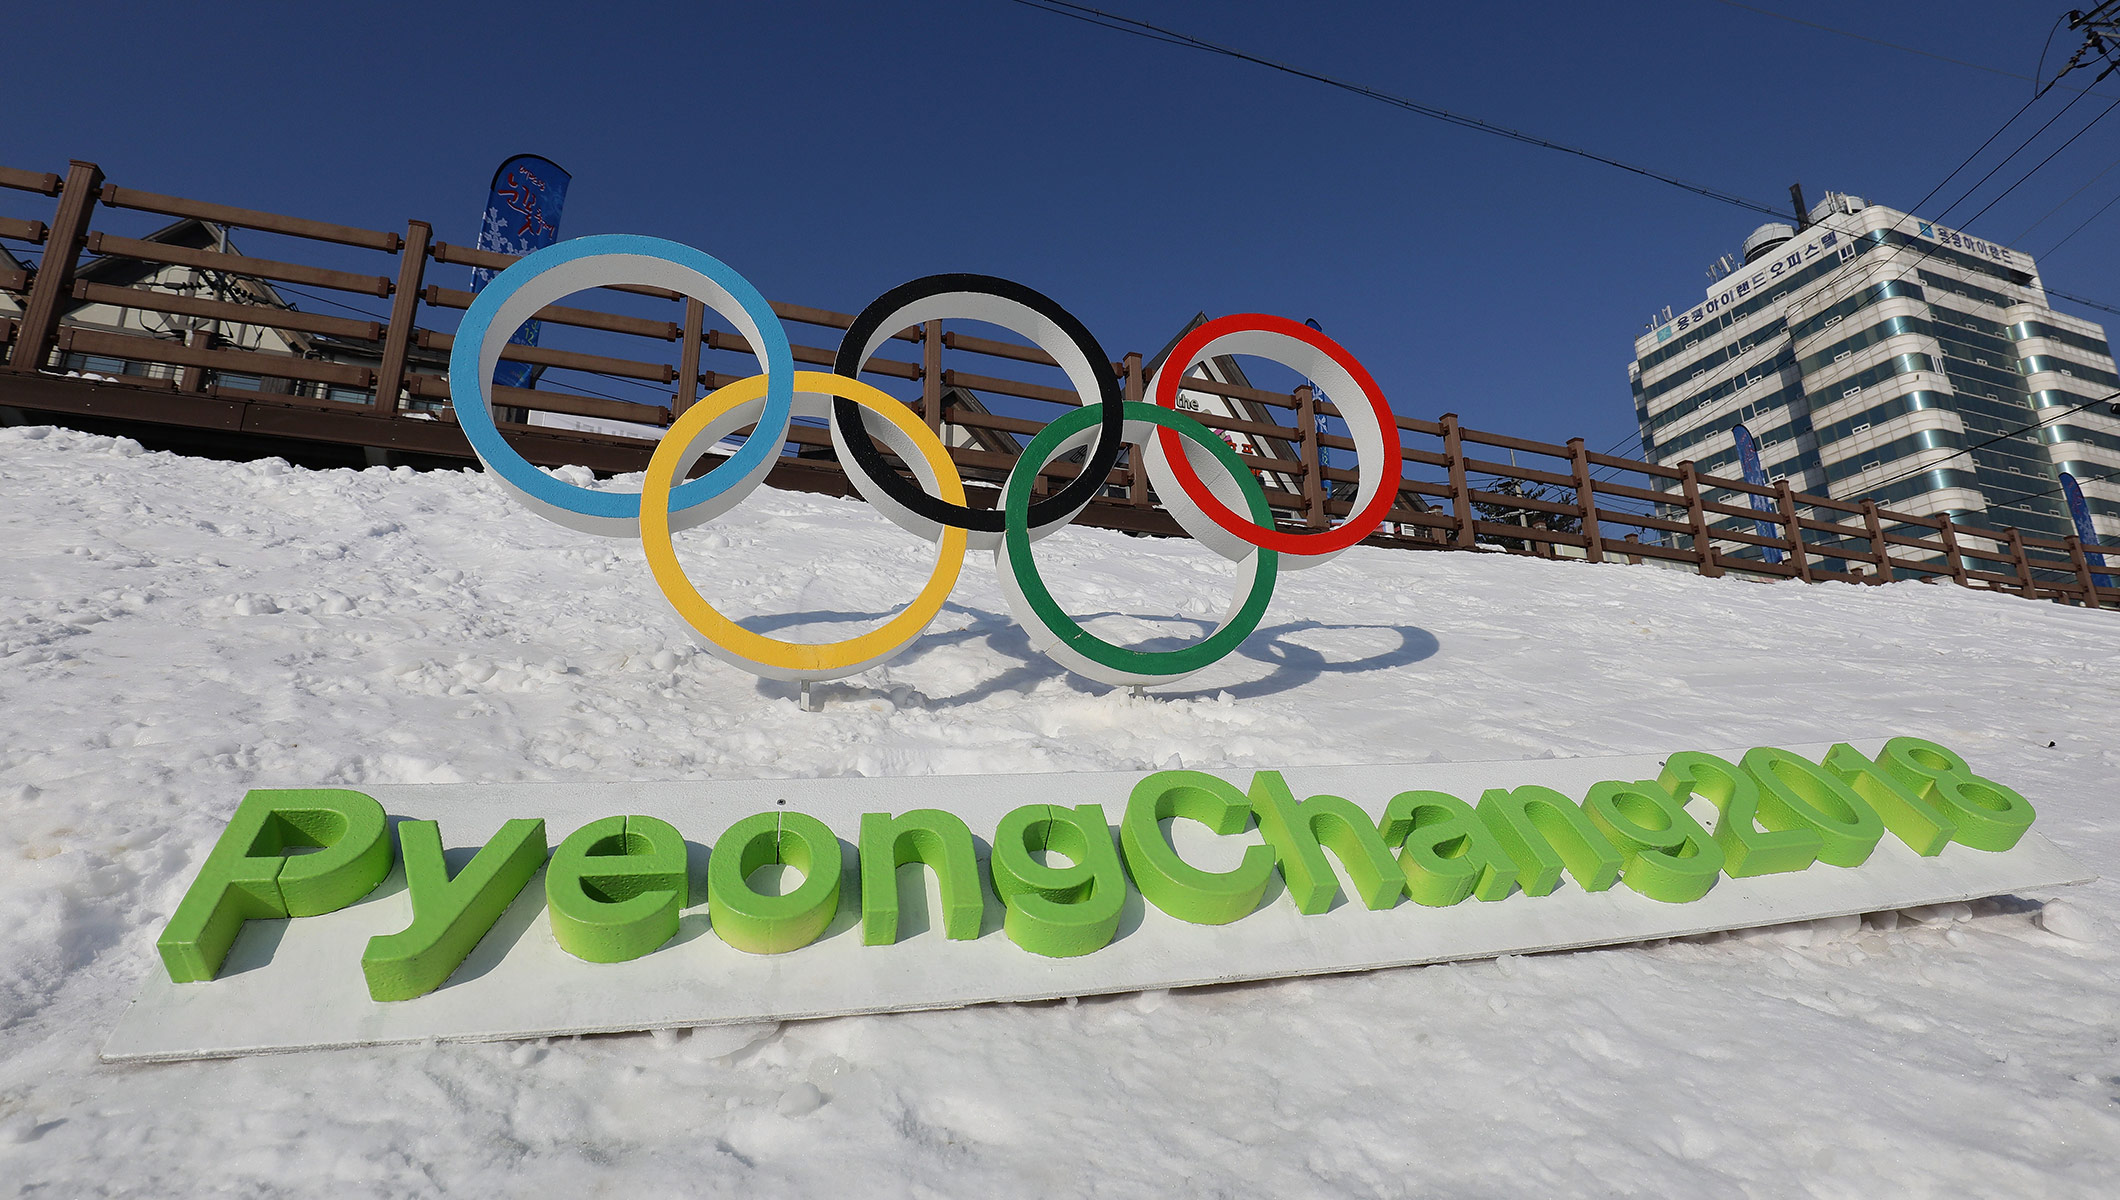 IOC invites Olympic winter athletes to PyeongChang 2018 with just